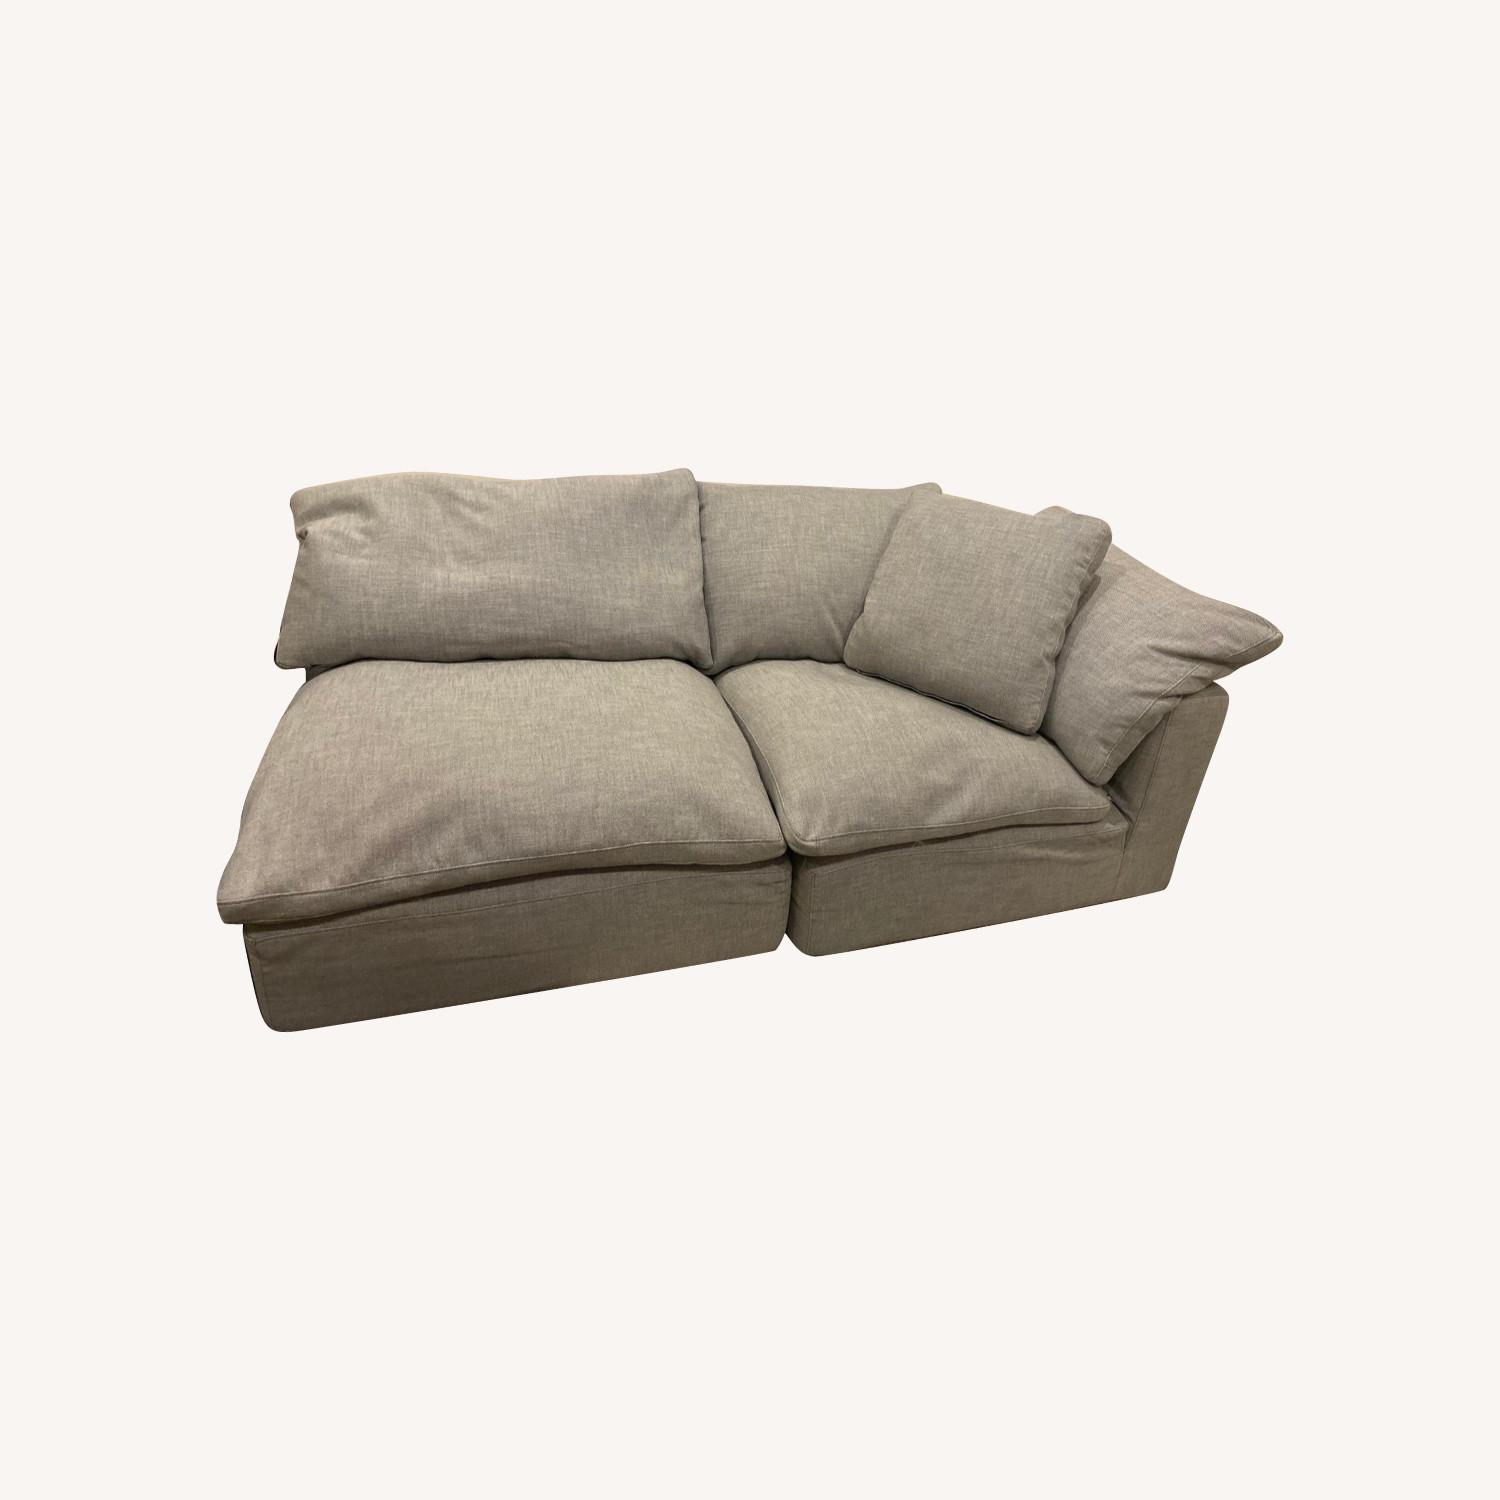 Restoration Hardware Cloud Couch Sectional - image-4